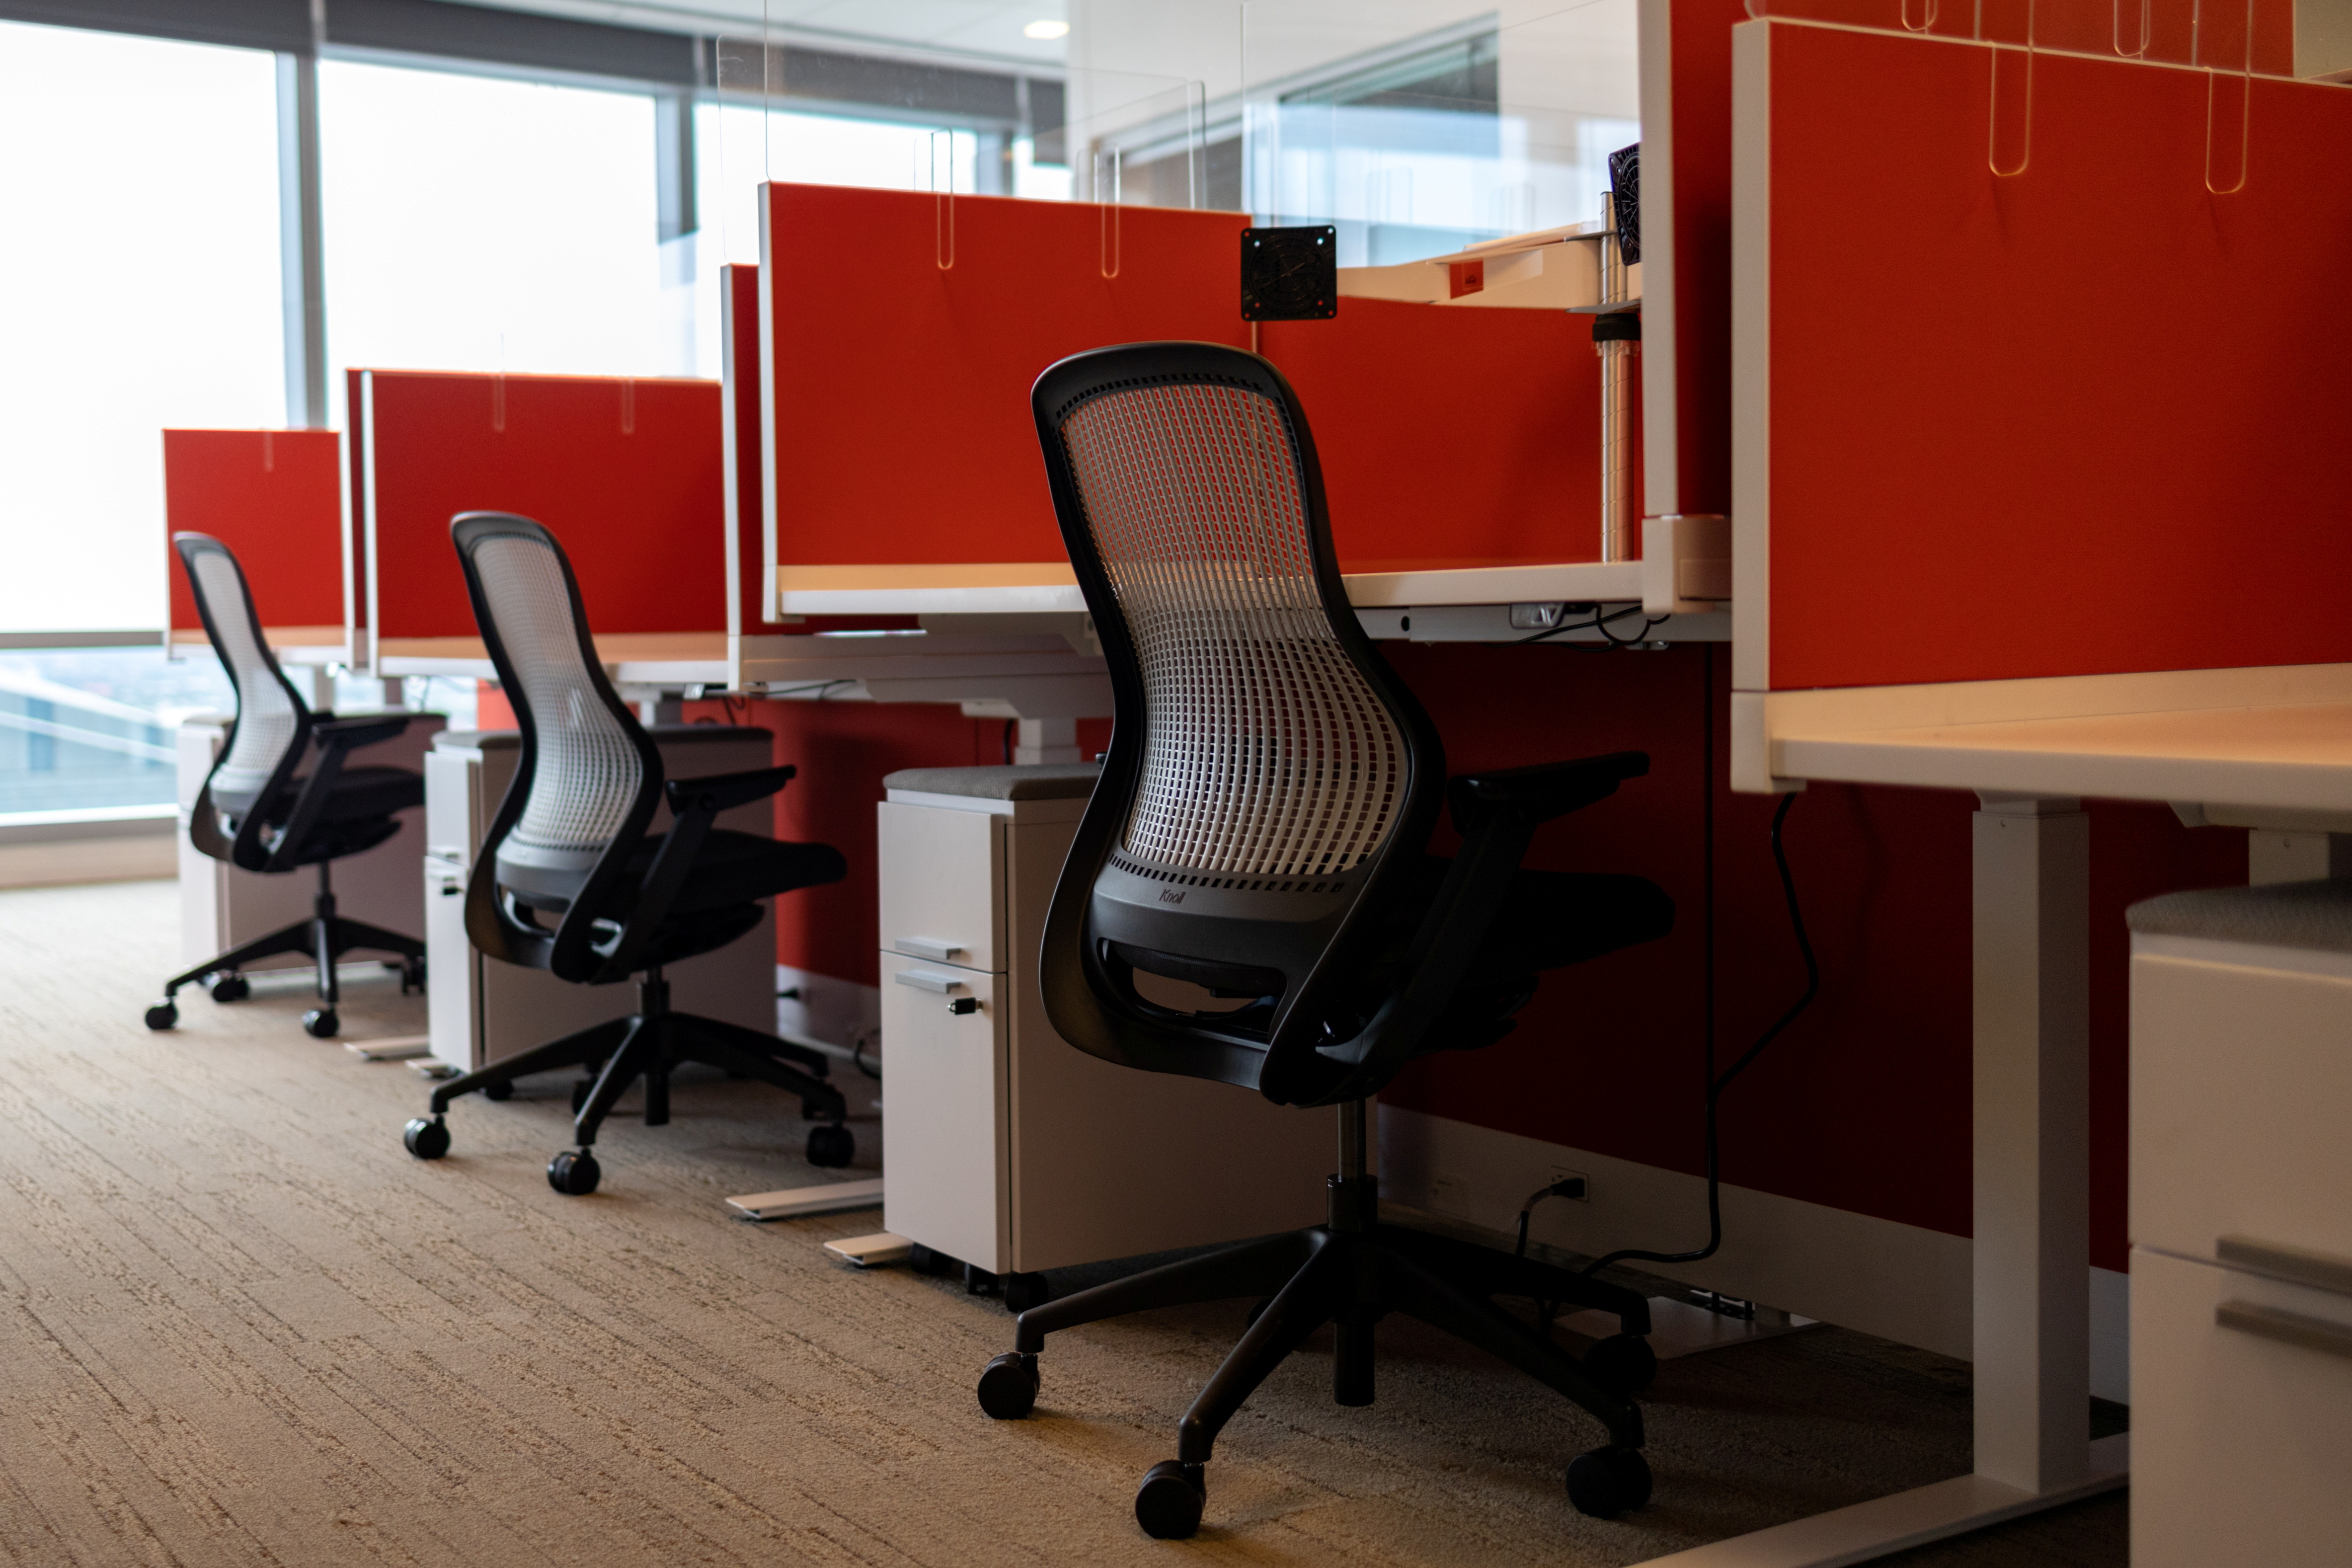 Empty cubicles are seen as the first phase of FMC Corporation employees return to work in the office in Philadelphia. REUTERS/Hannah Beier